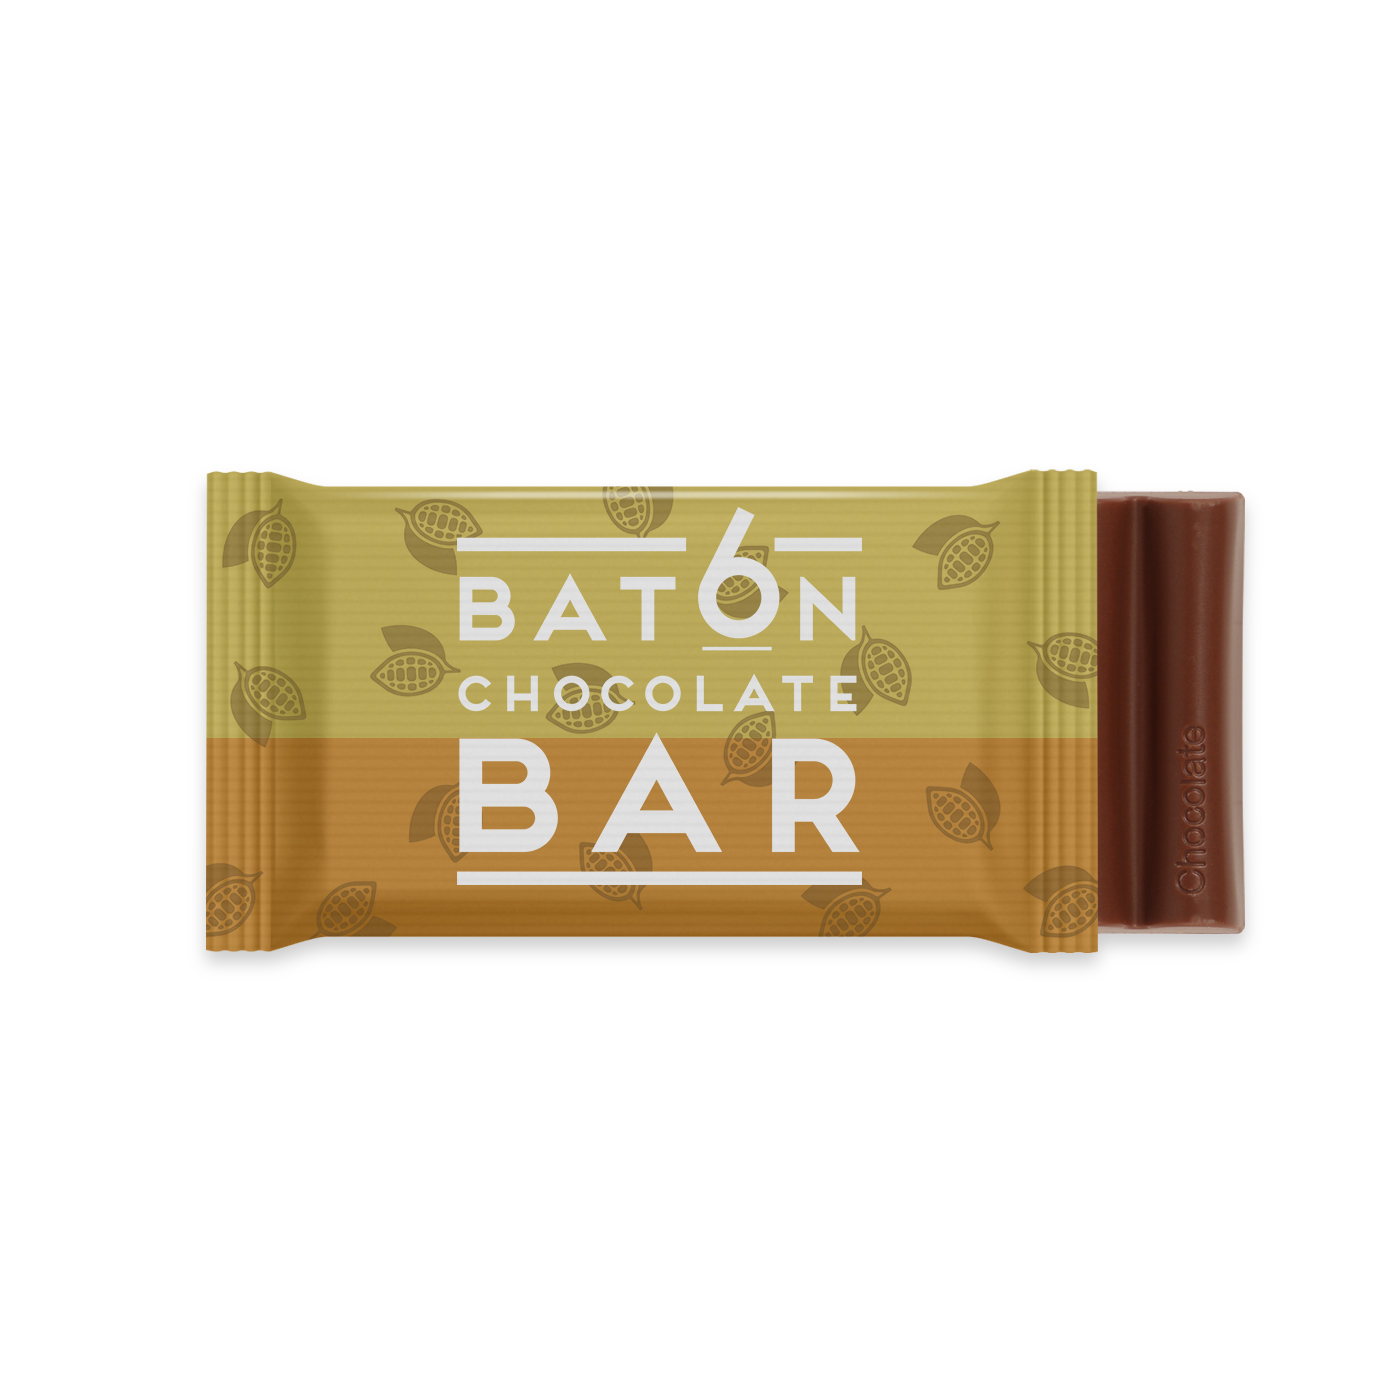 6 BATON CHOCOLATE BAR